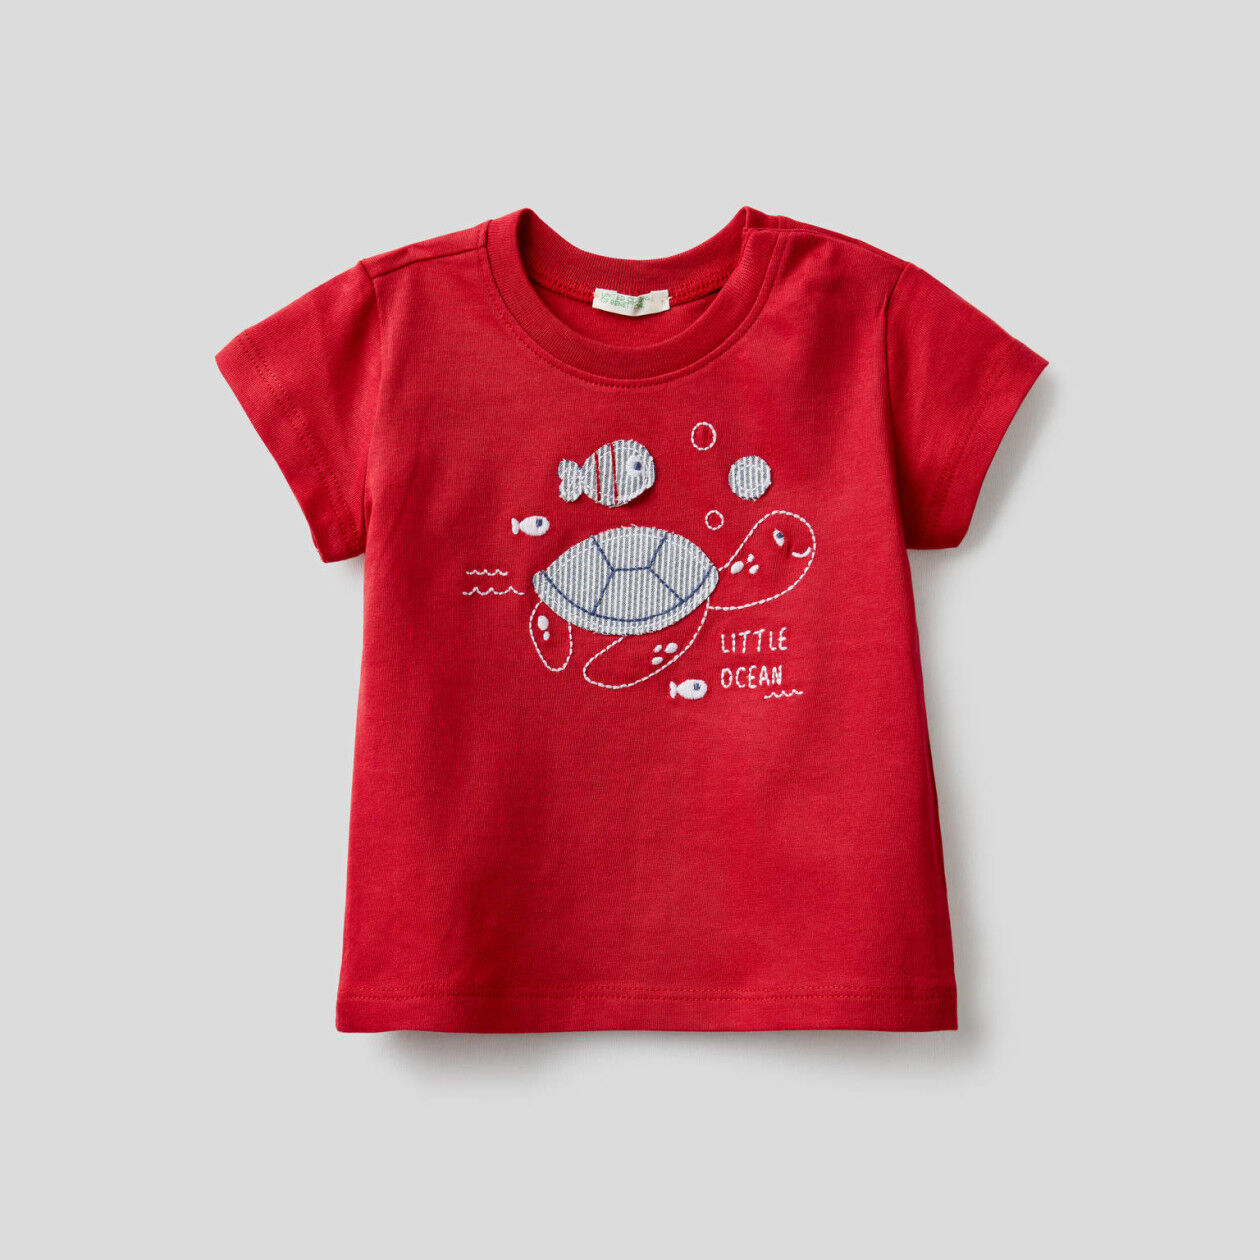 T-shirt in cotone biologico con ricamo